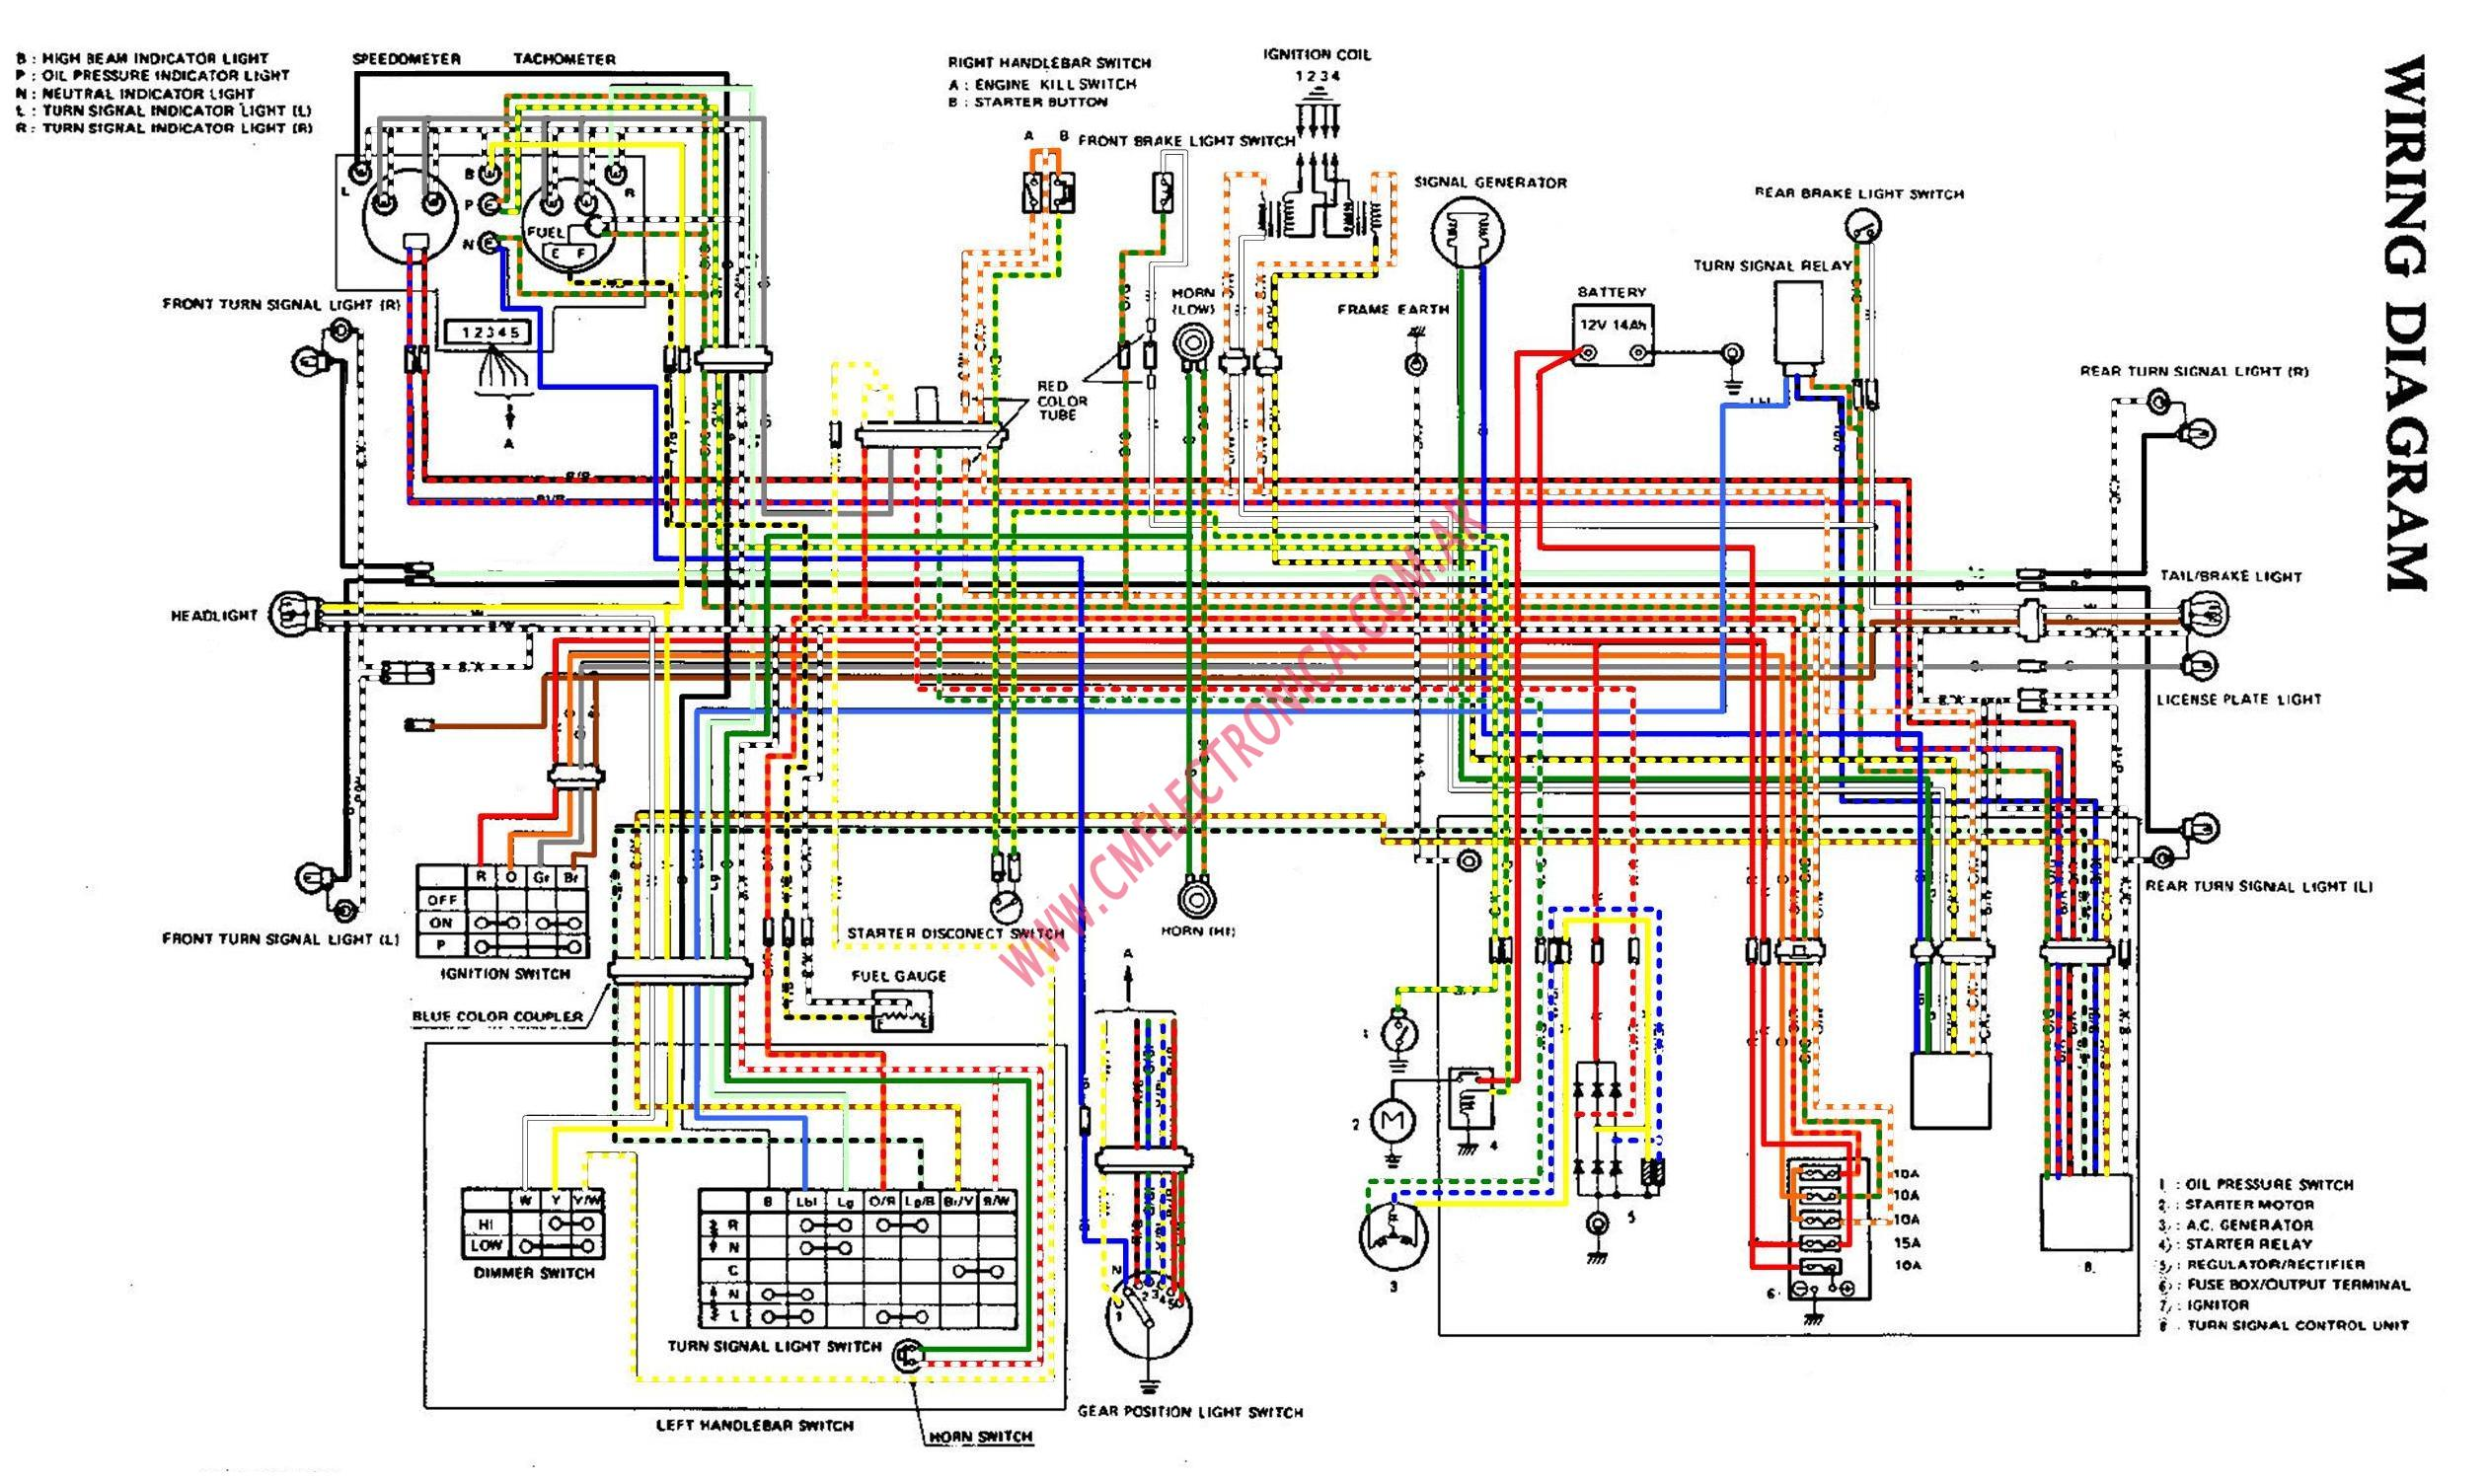 Sv650 Wiring Schematics - Toyota Solara Jbl Wiring Diagram for Wiring  Diagram SchematicsWiring Diagram Schematics